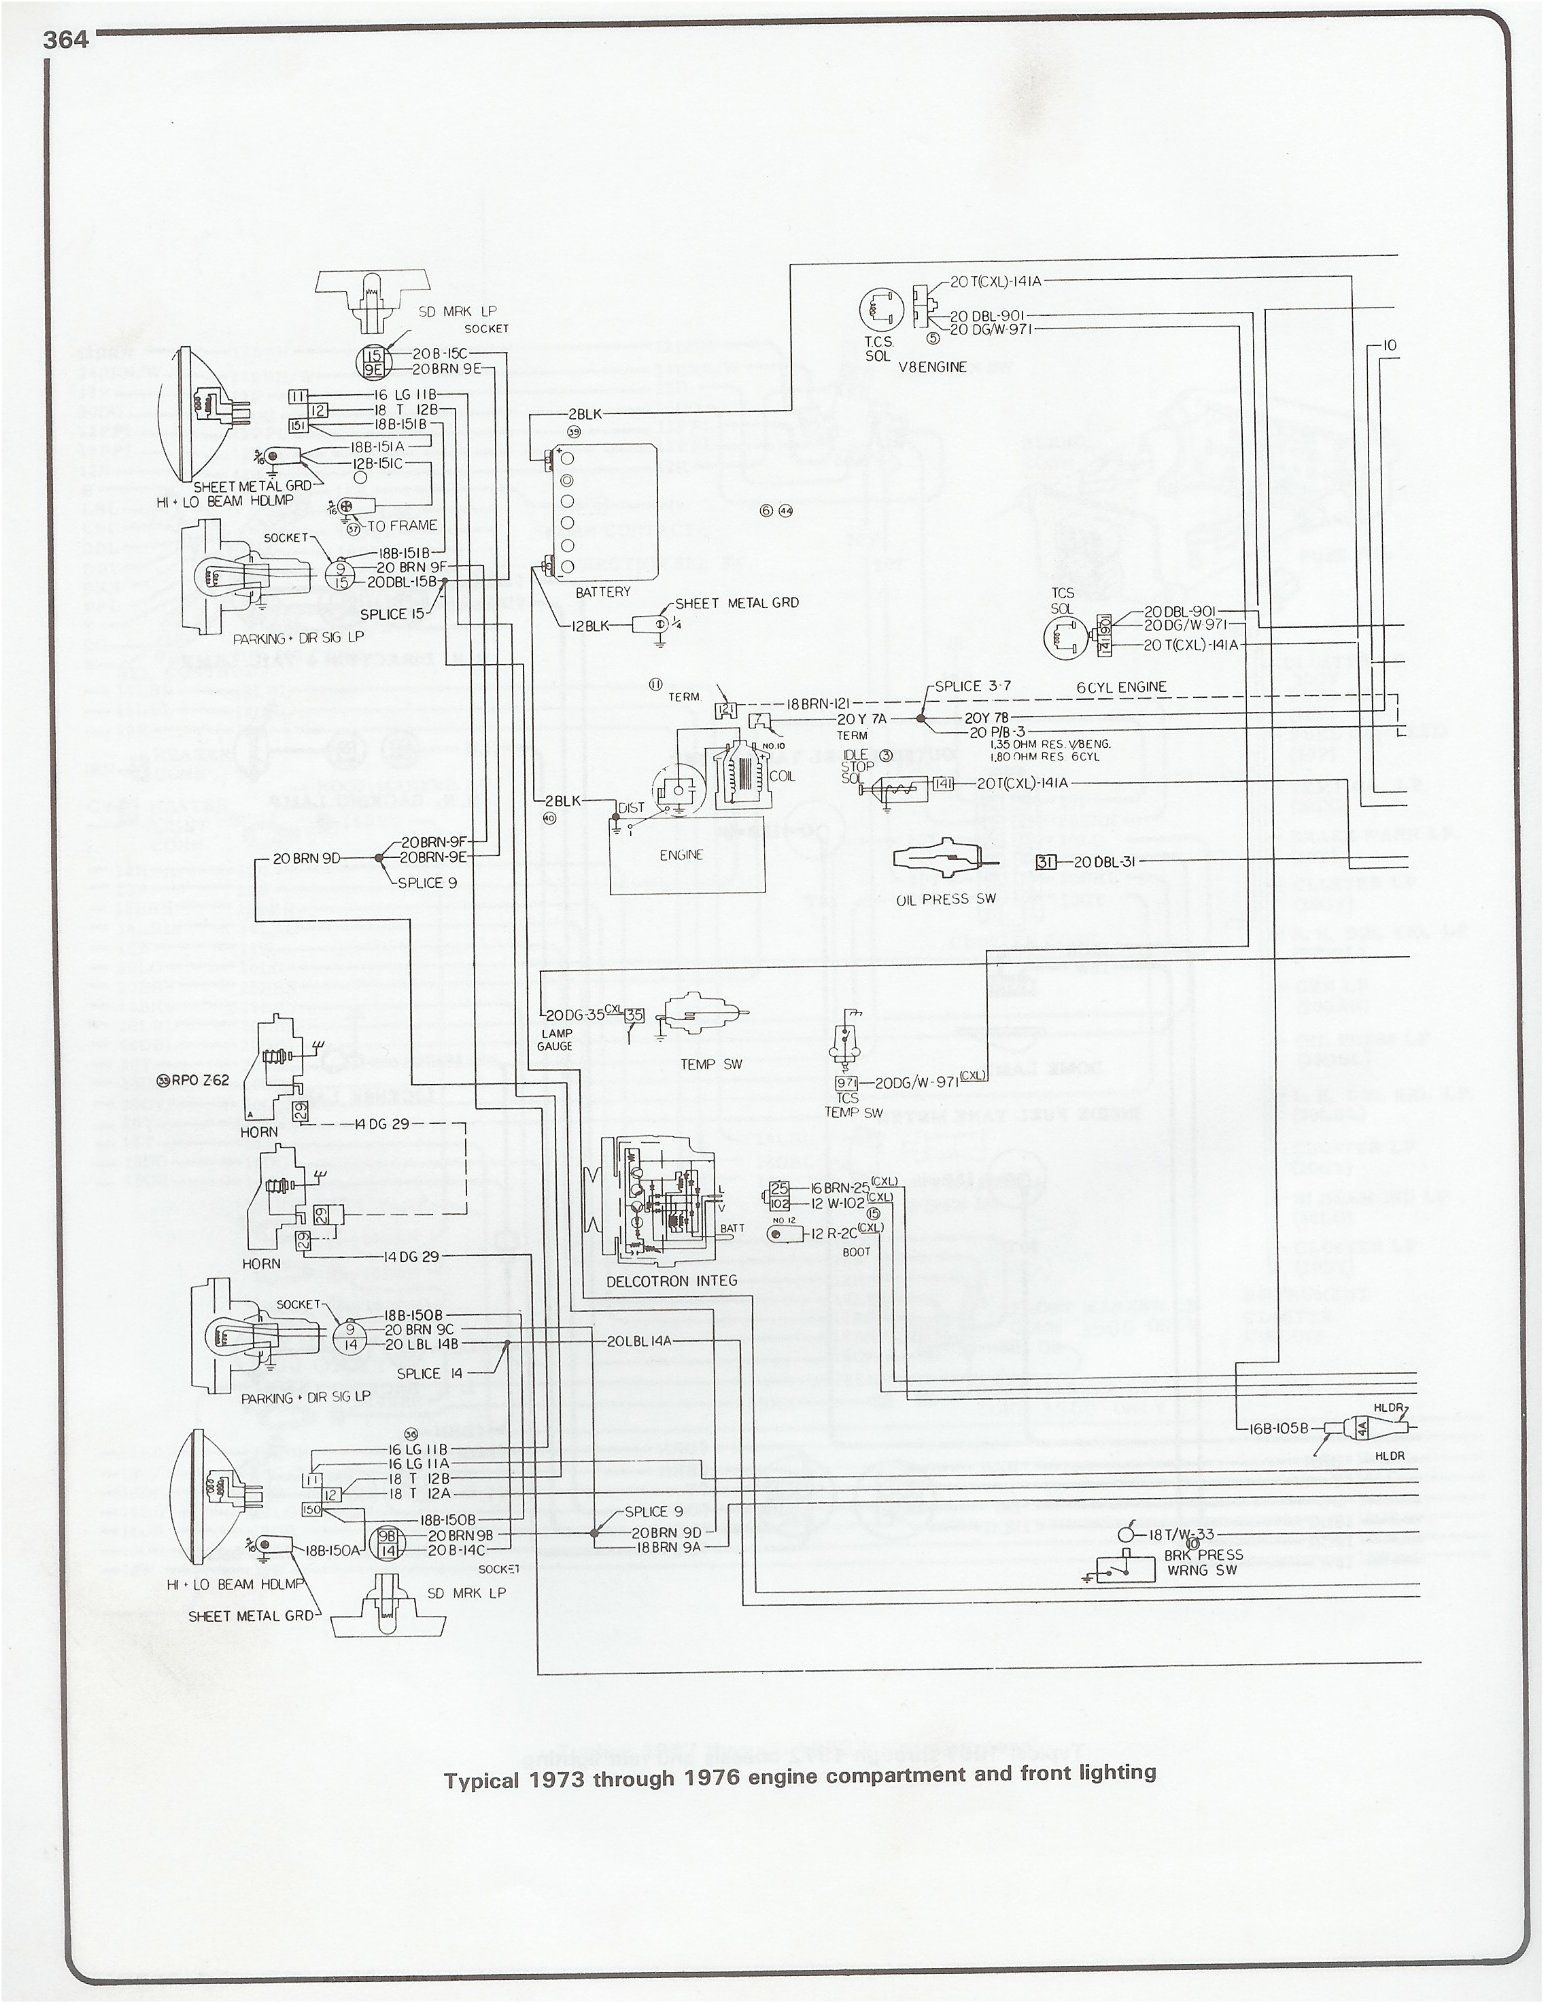 Wiring Diagram Likewise Electrical Wiring Diagram On 2001 Gsxr 750